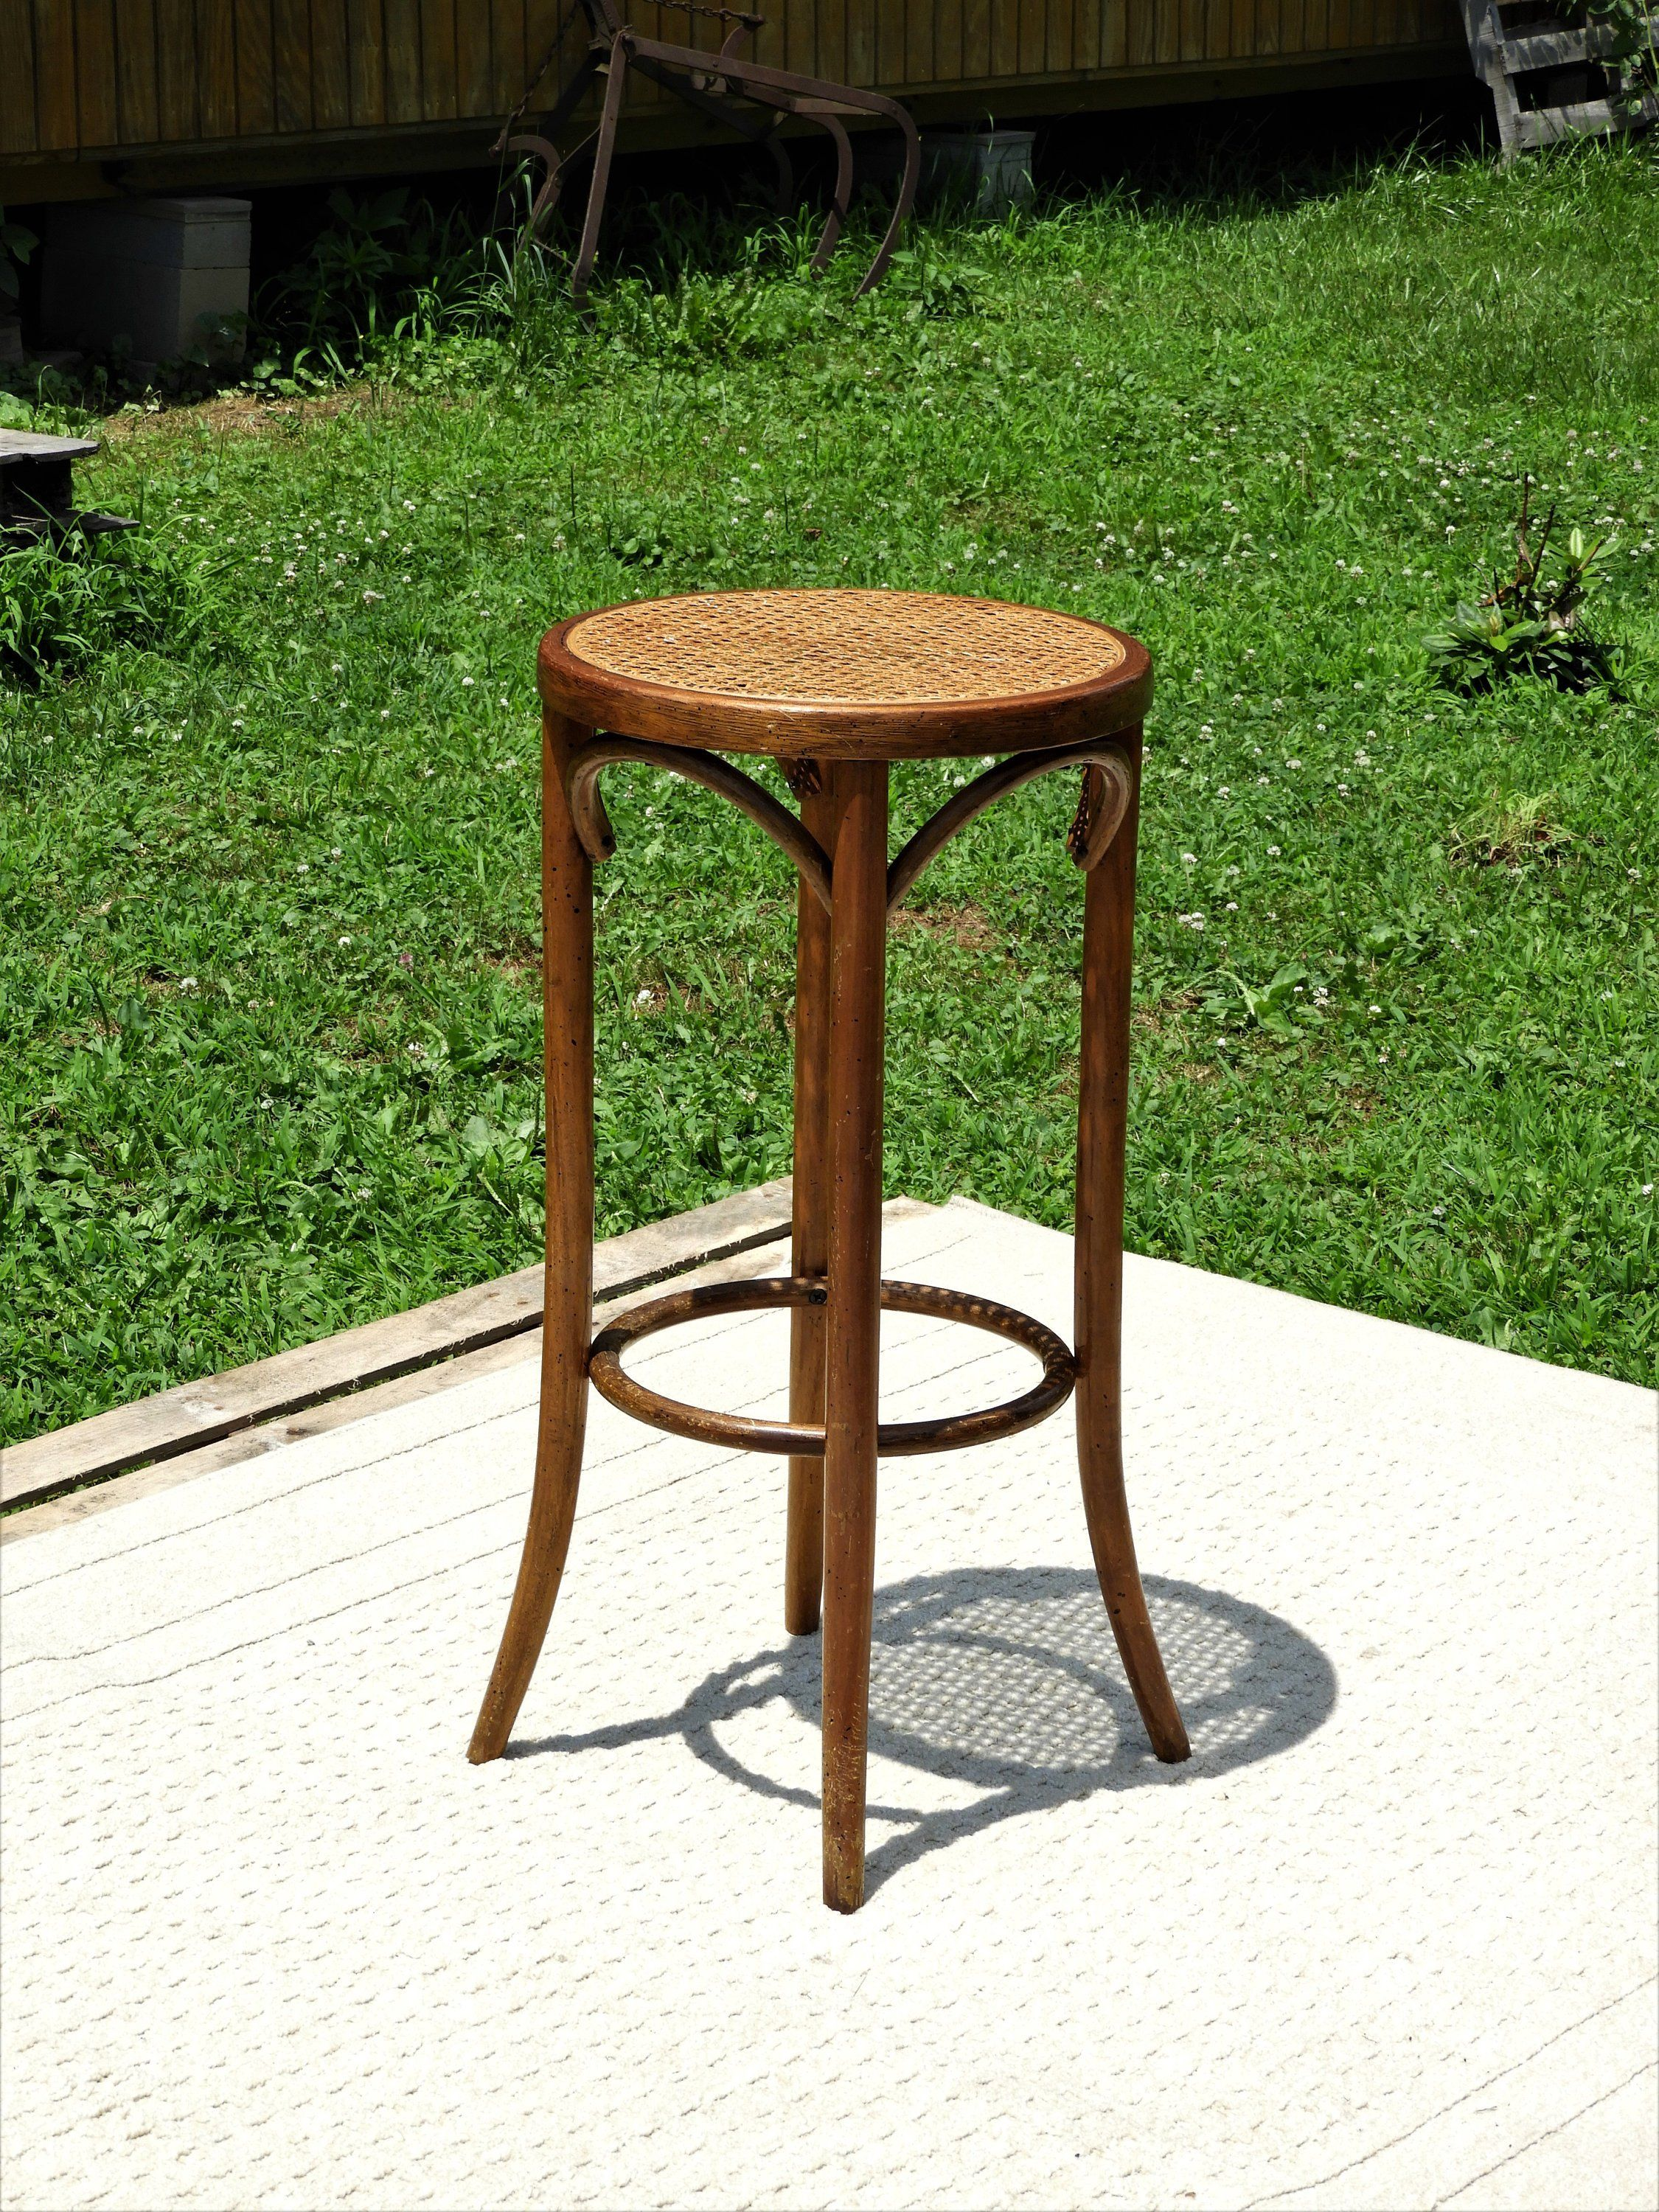 Vintage Bentwood Stool Woven Rattan Stand Round Wooden Table Brown Gold Seating Decorative Wood Accent Distressed Decorations By Vintagedecoraddict